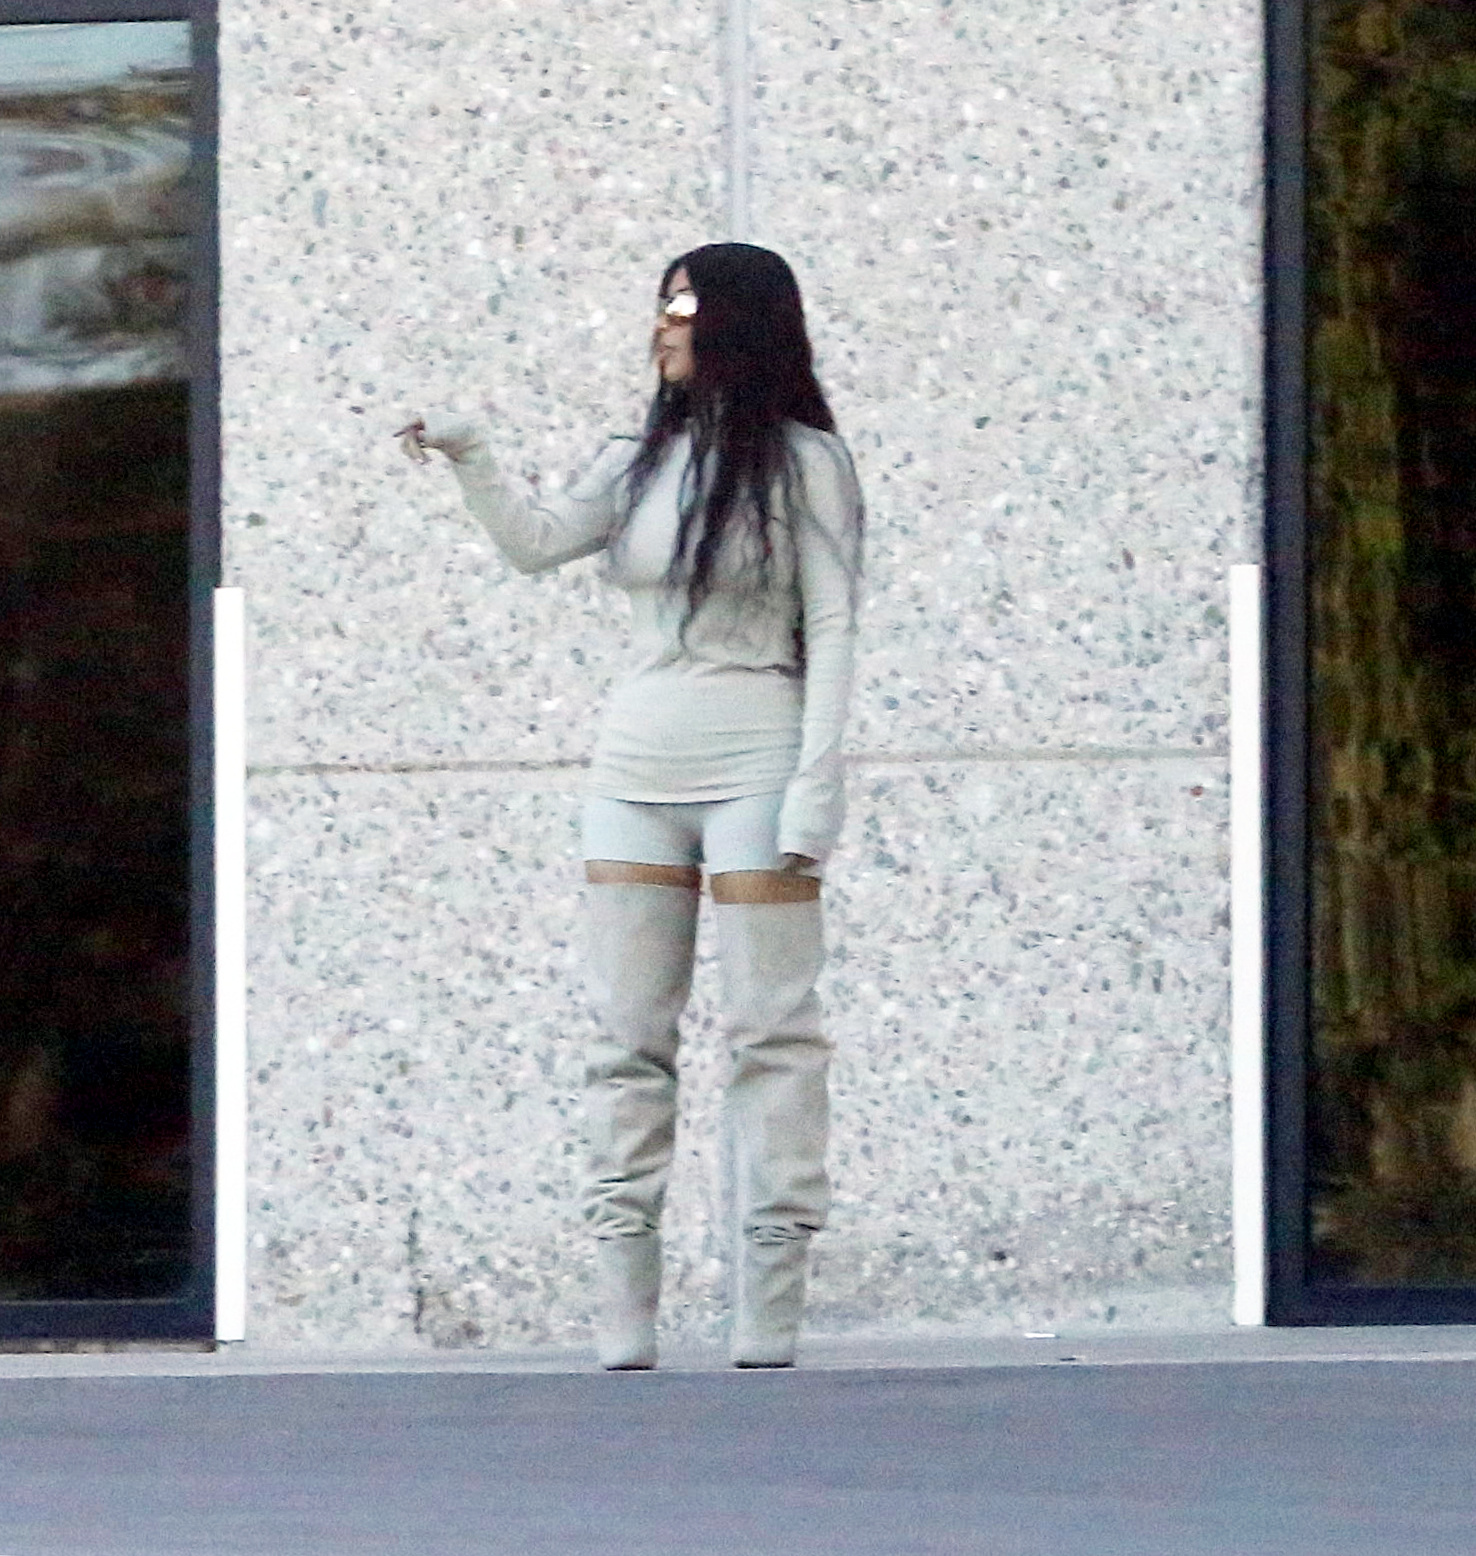 PREMIUM EXCLUSIVE Please contact X17 before any use of these exclusive photos - x17@x17agency.com   Kim Kardashian strikes a pose in a pair of sexy thigh high boots and figure hugging booty shorts for a photo shoot in Calabasas. June 11, 2018  akra/X17online.com